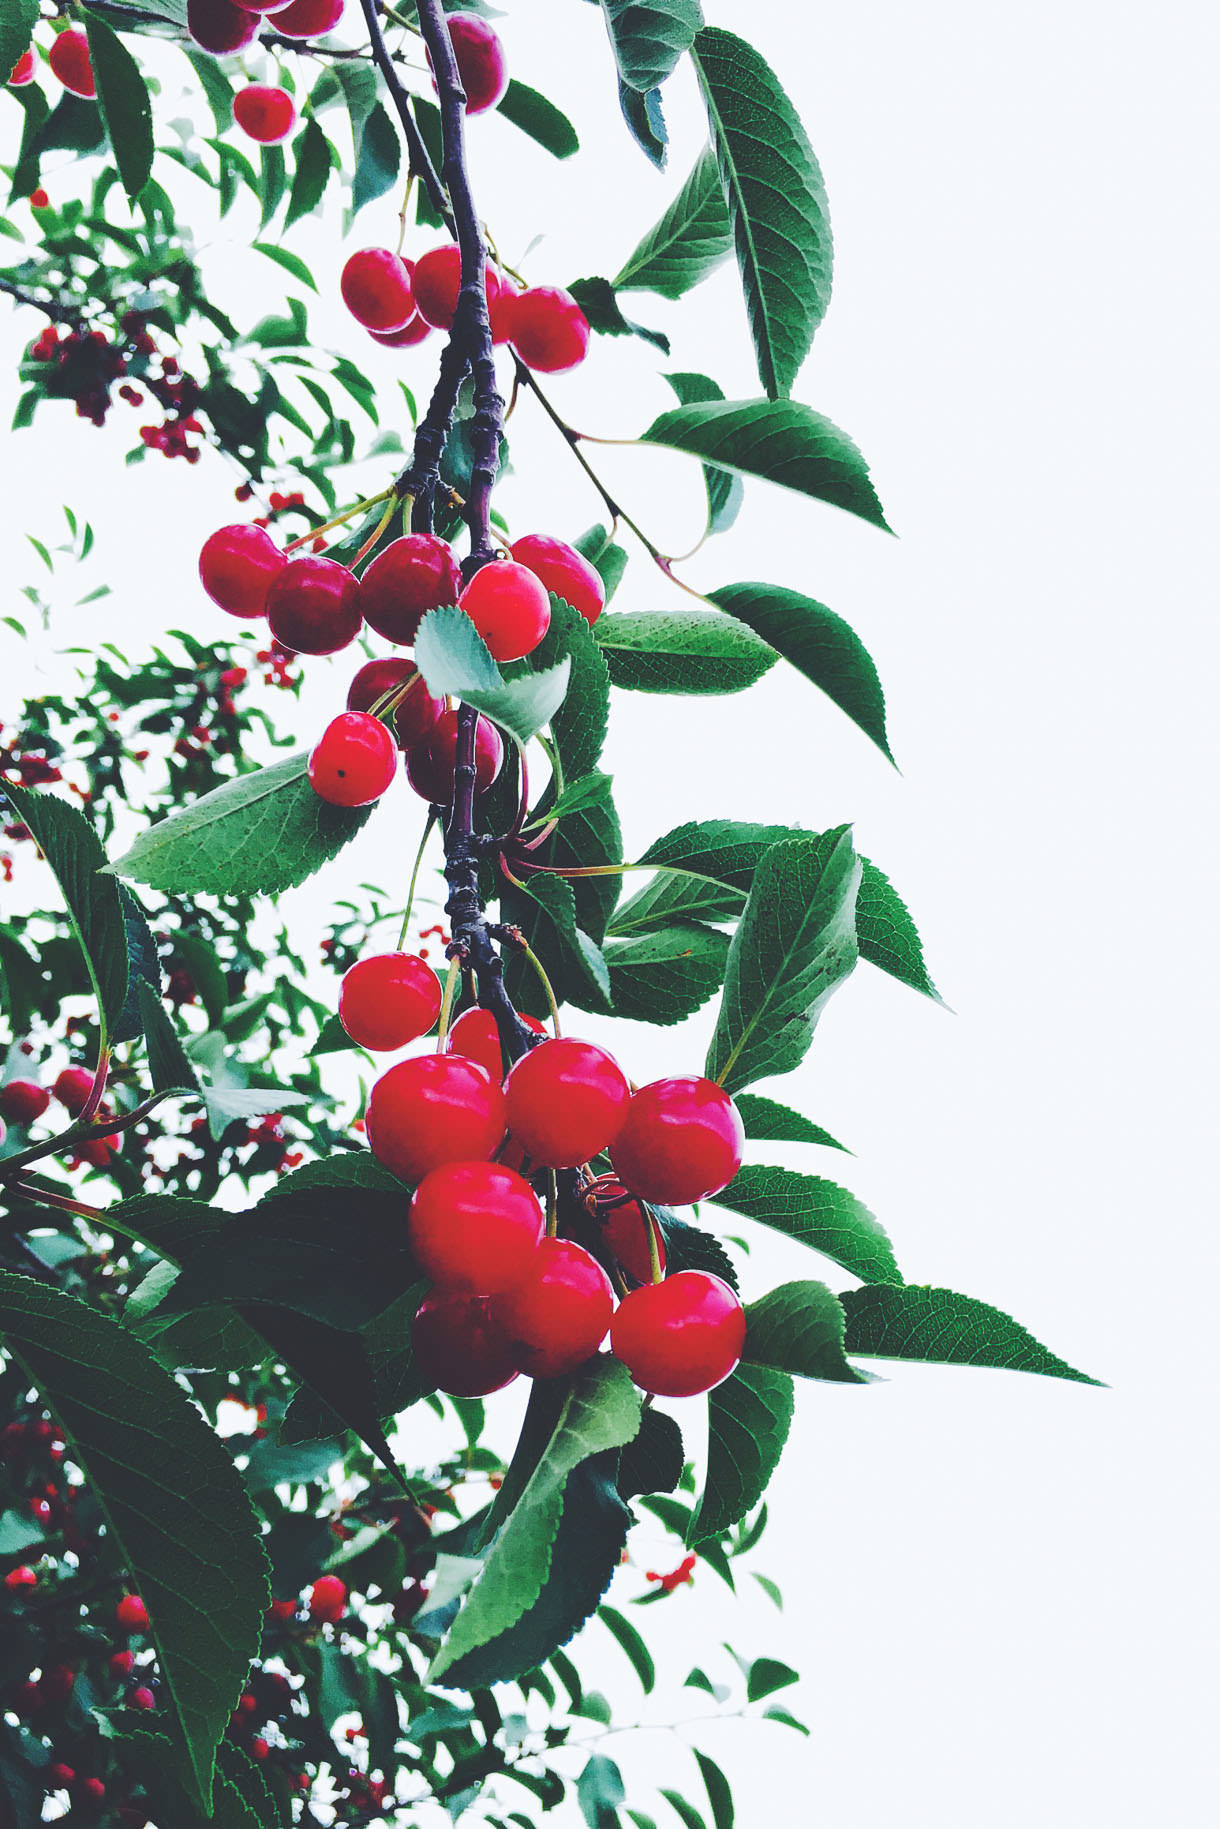 Tart Cherry Tree {michigan}